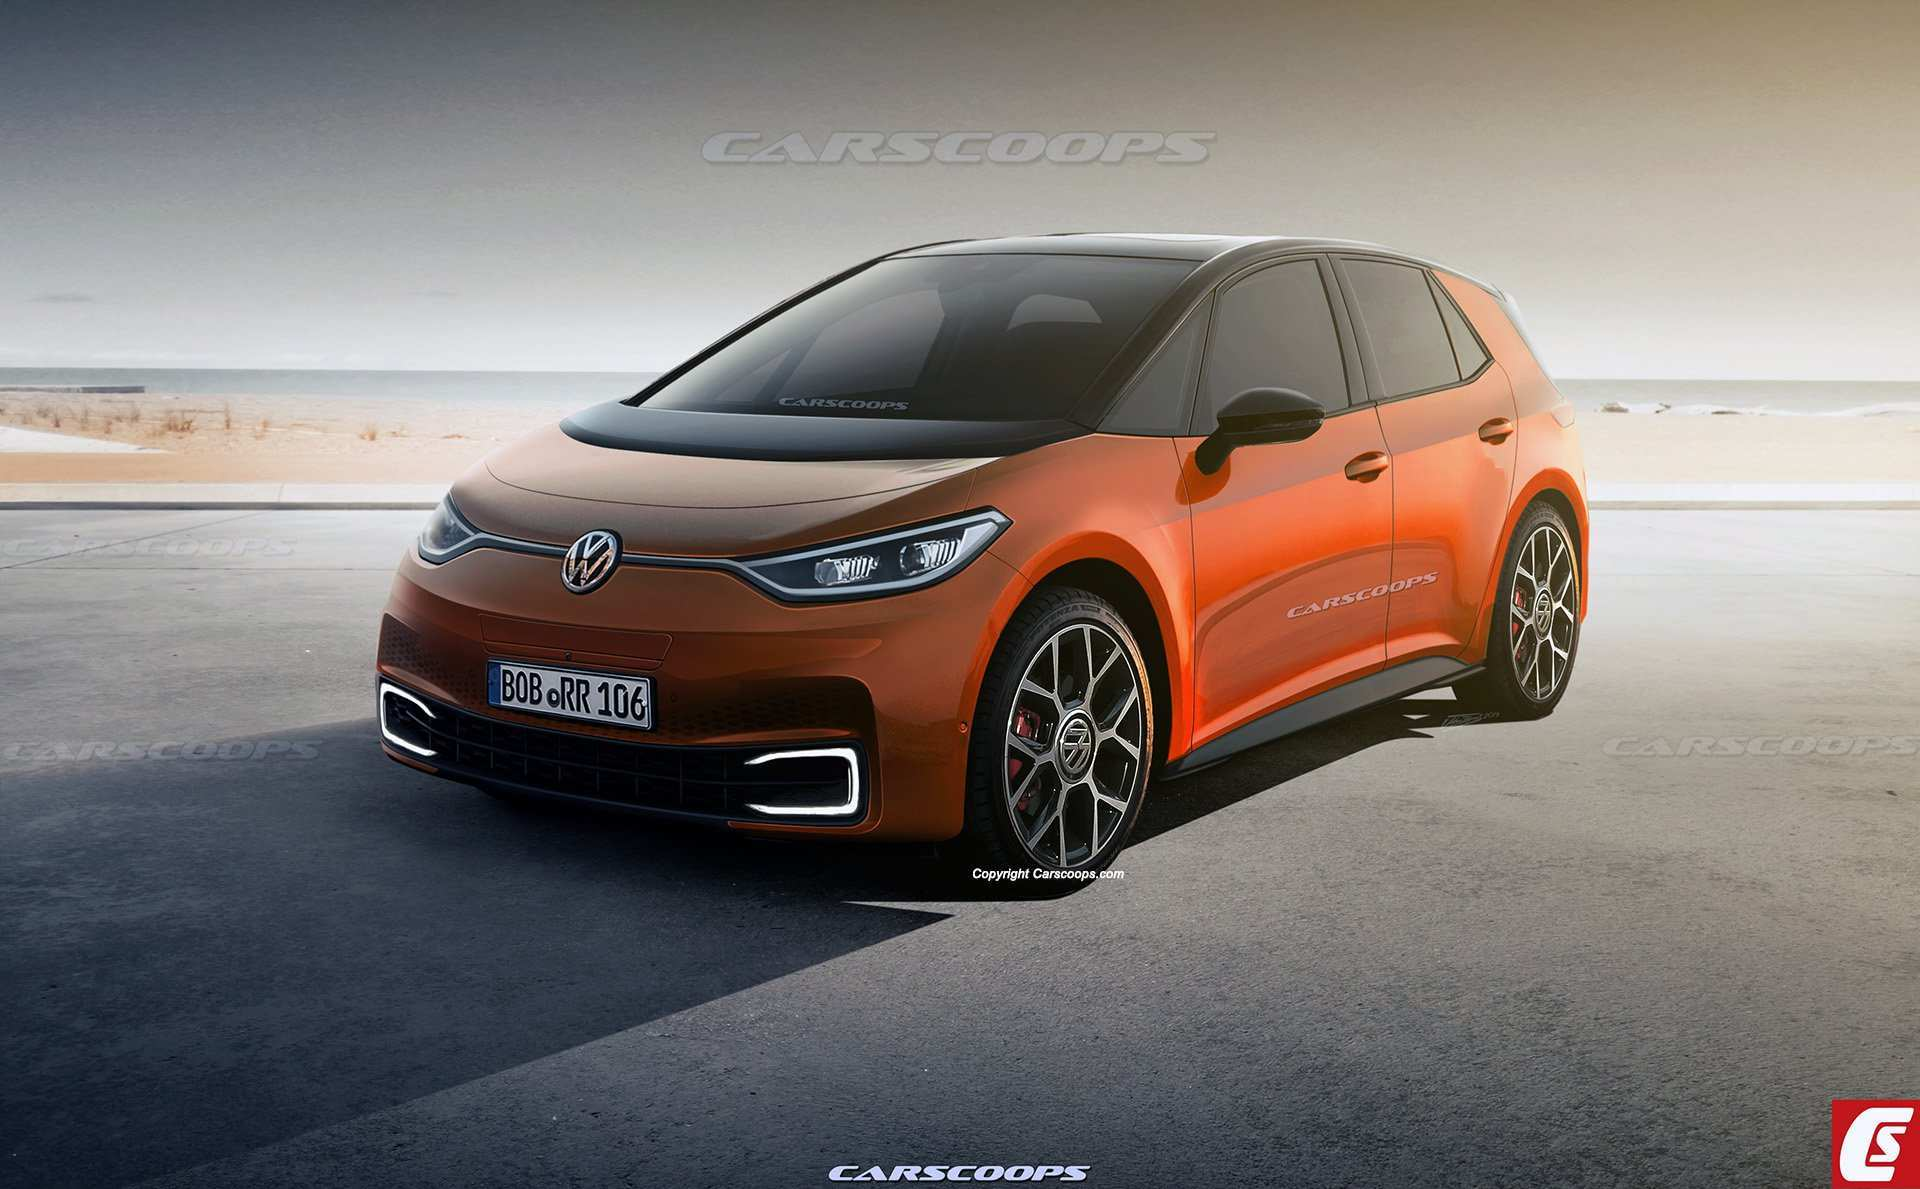 14 Concept of Volkswagen Id 3 2020 Pricing with Volkswagen Id 3 2020